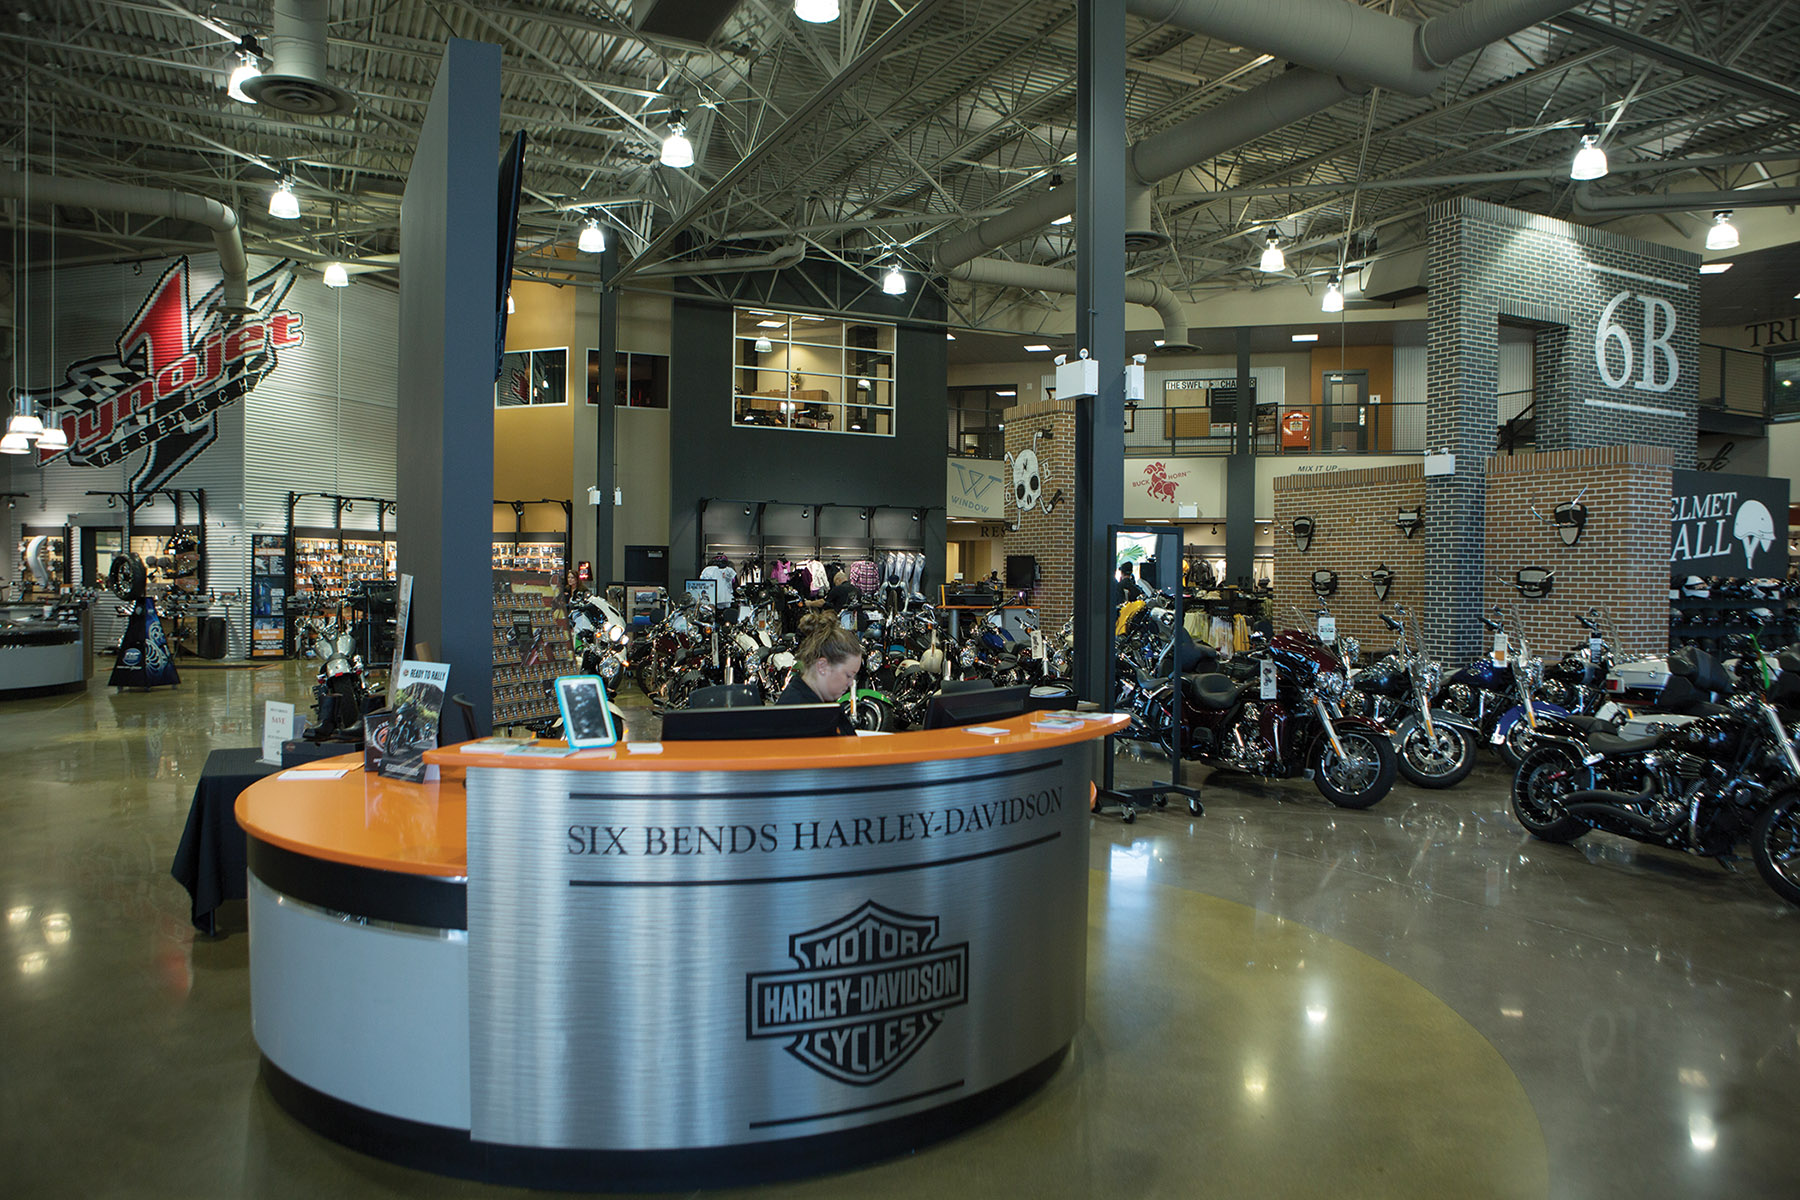 easy riding - a visit to six bends harley-davidson encompasses